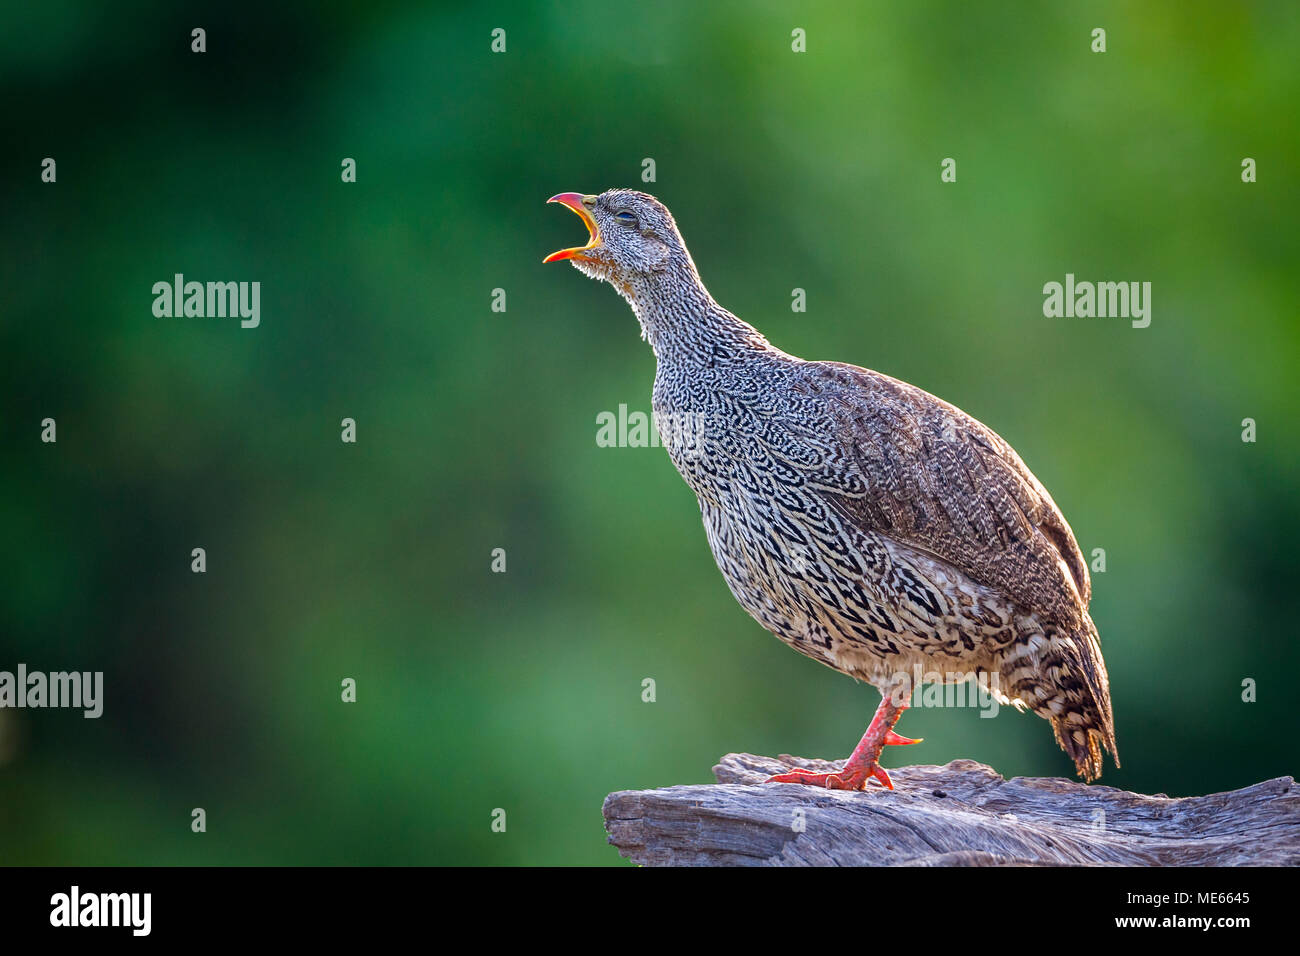 Natal francolin in Mapungubwe national park, South Africa ;Specie Pternistis natalensis family of Phasianidae - Stock Image